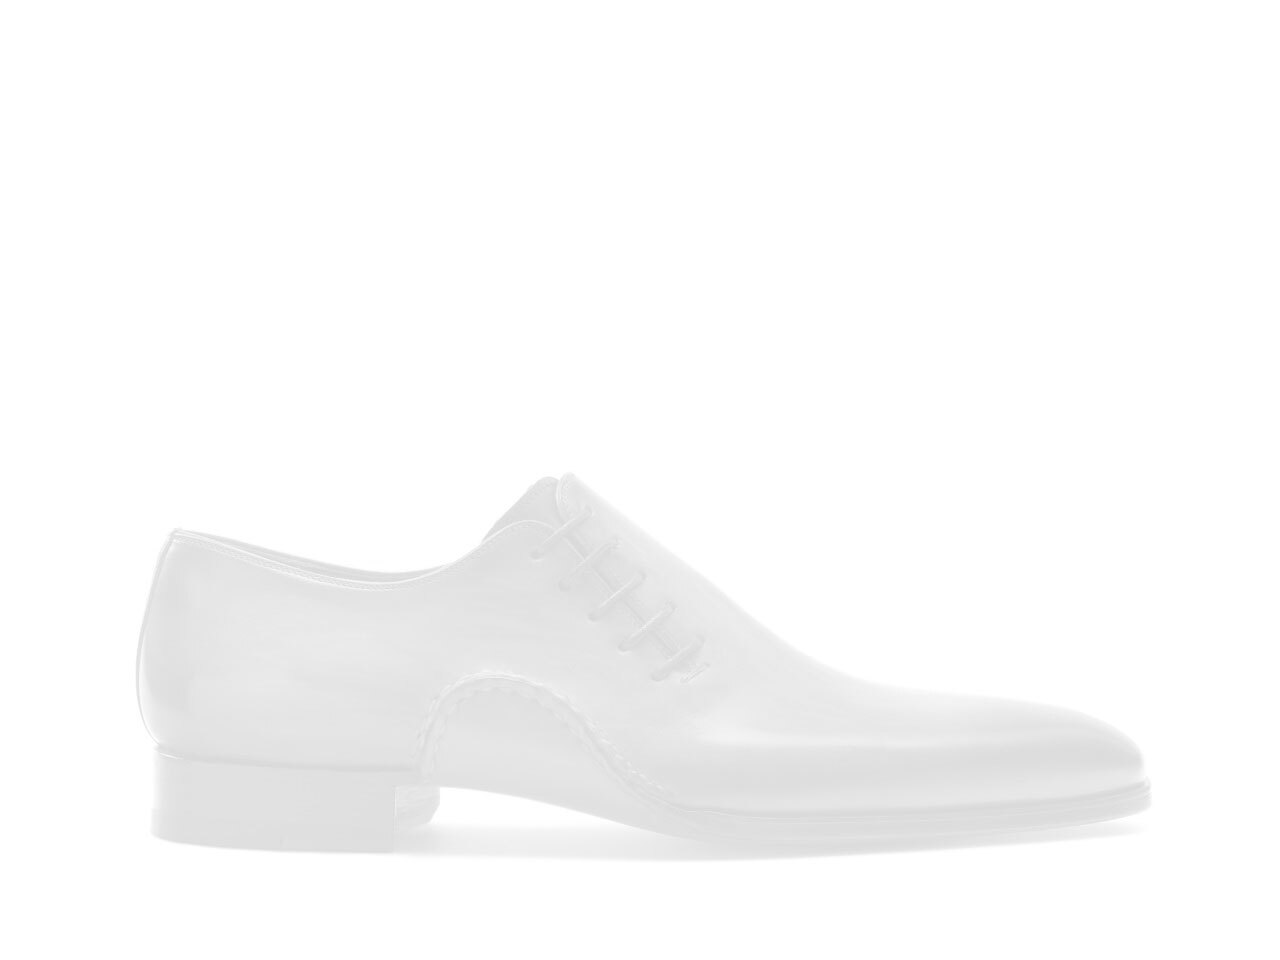 Side view of the Magnanni Basilio Lo White Men's Sneakers